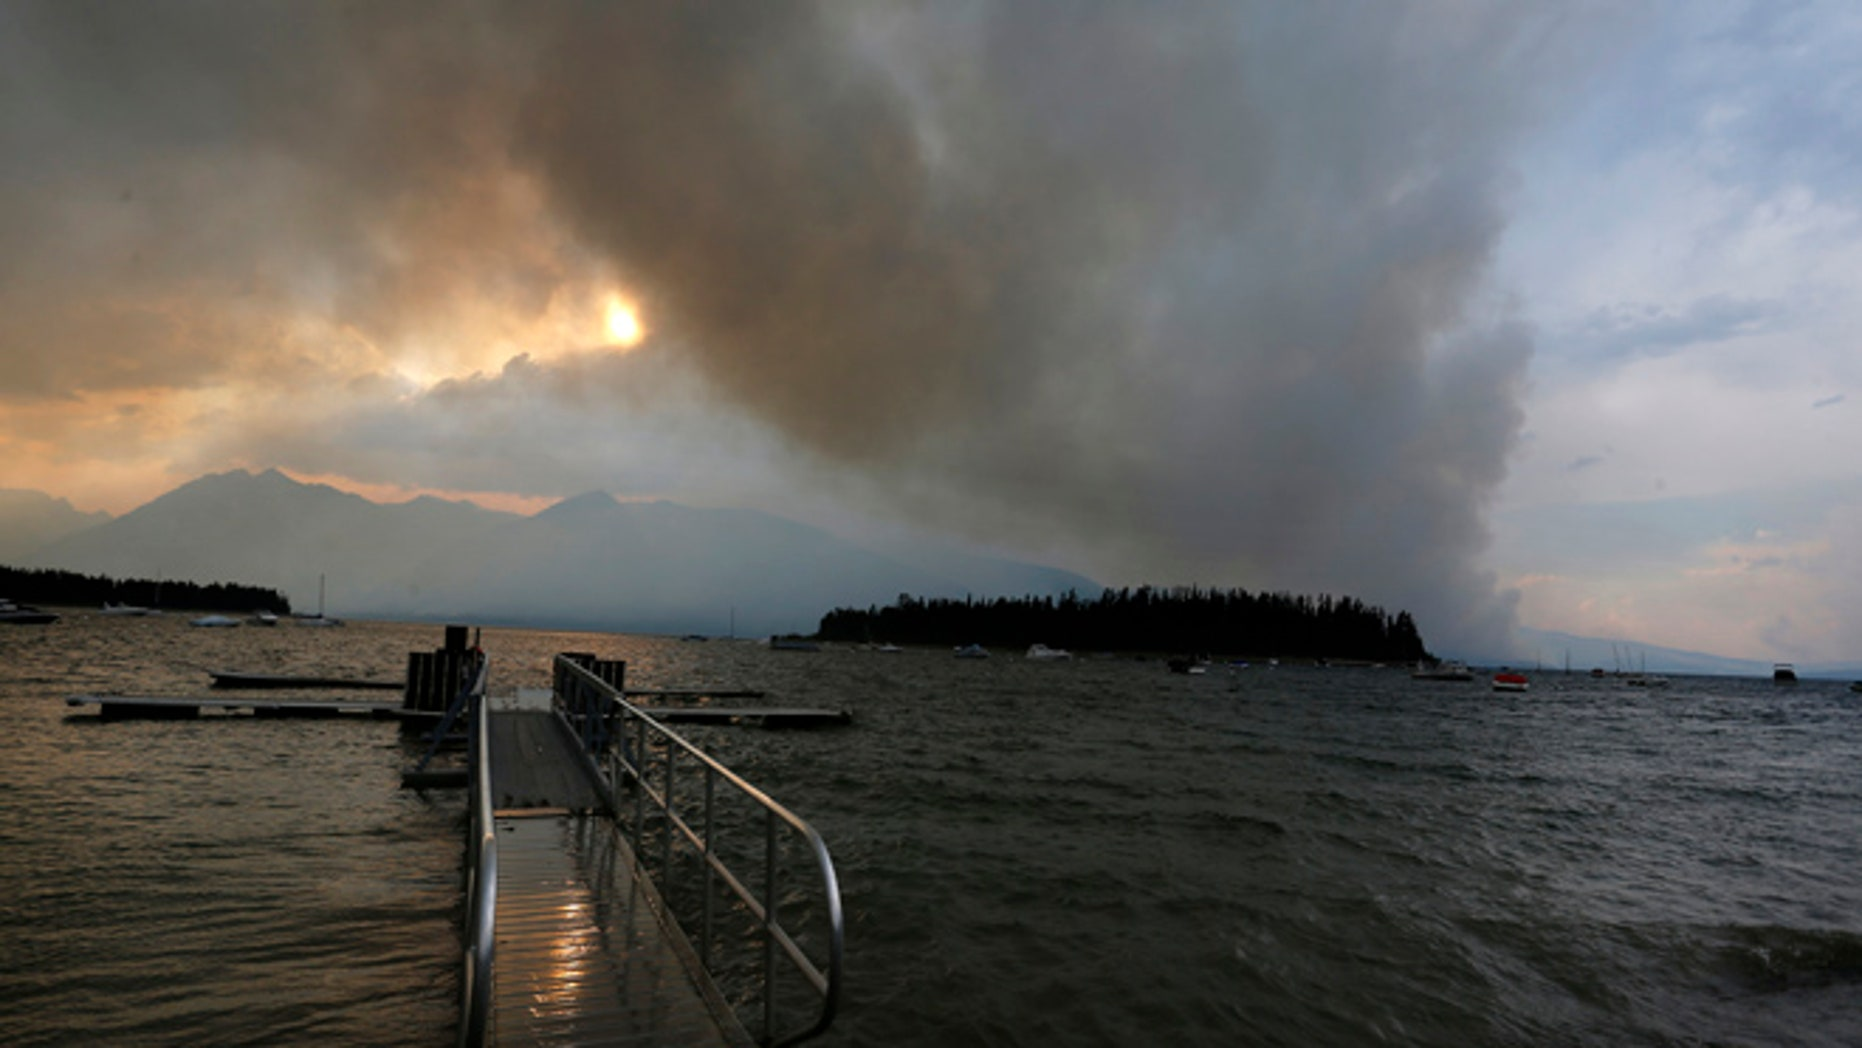 A wildfire is visible from Leek's Marina on the shore of Jackson Lake, in Grand Teton National Park, Wyo., Wednesday, Aug. 24, 2016.